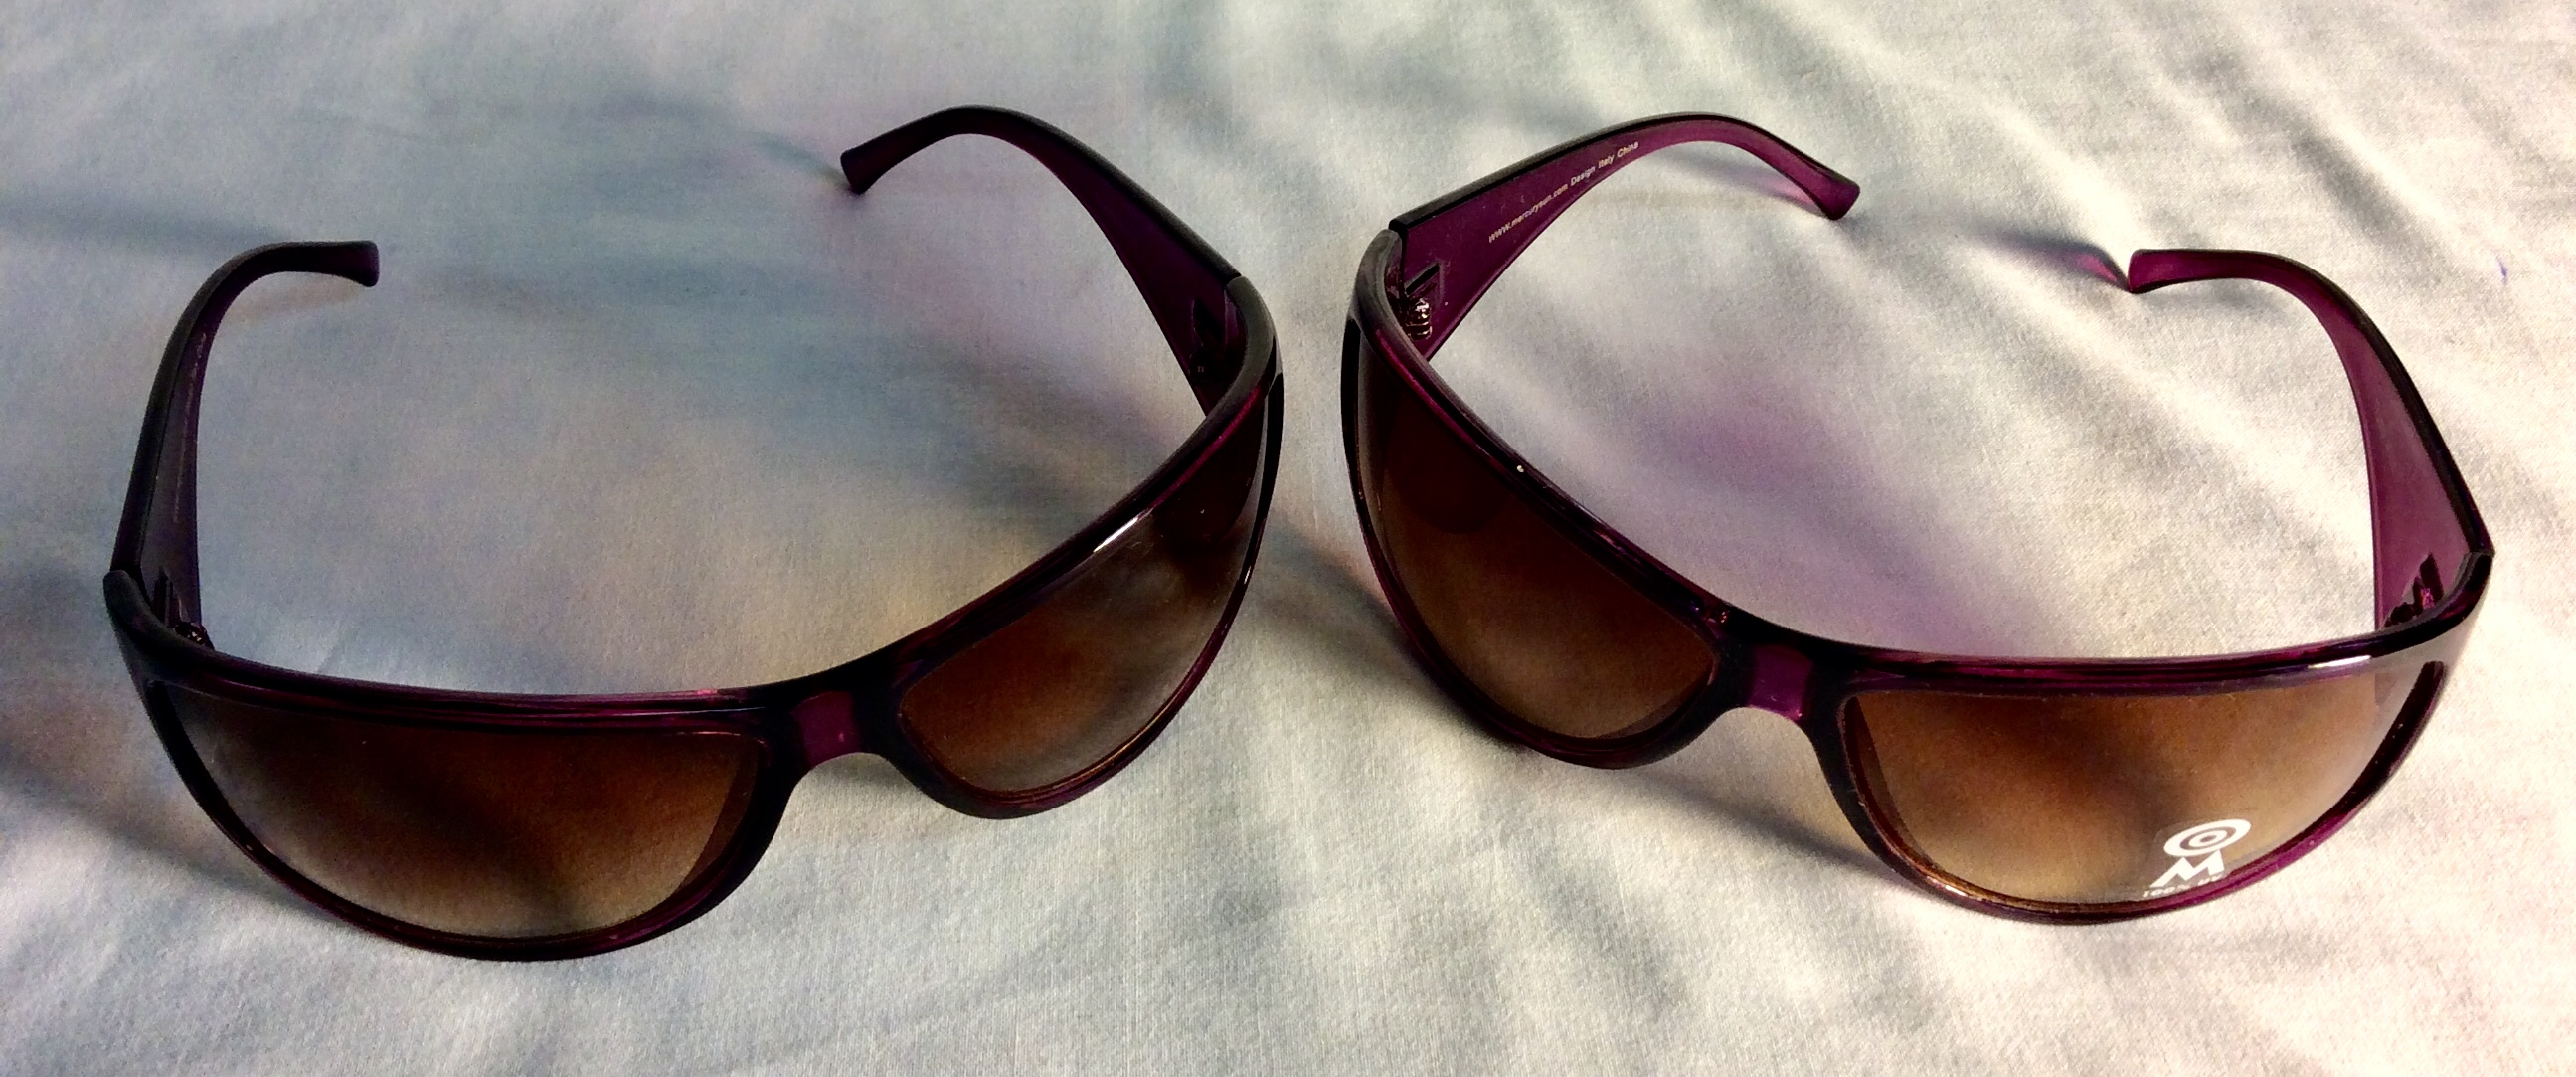 Light purple plastic sunglasses